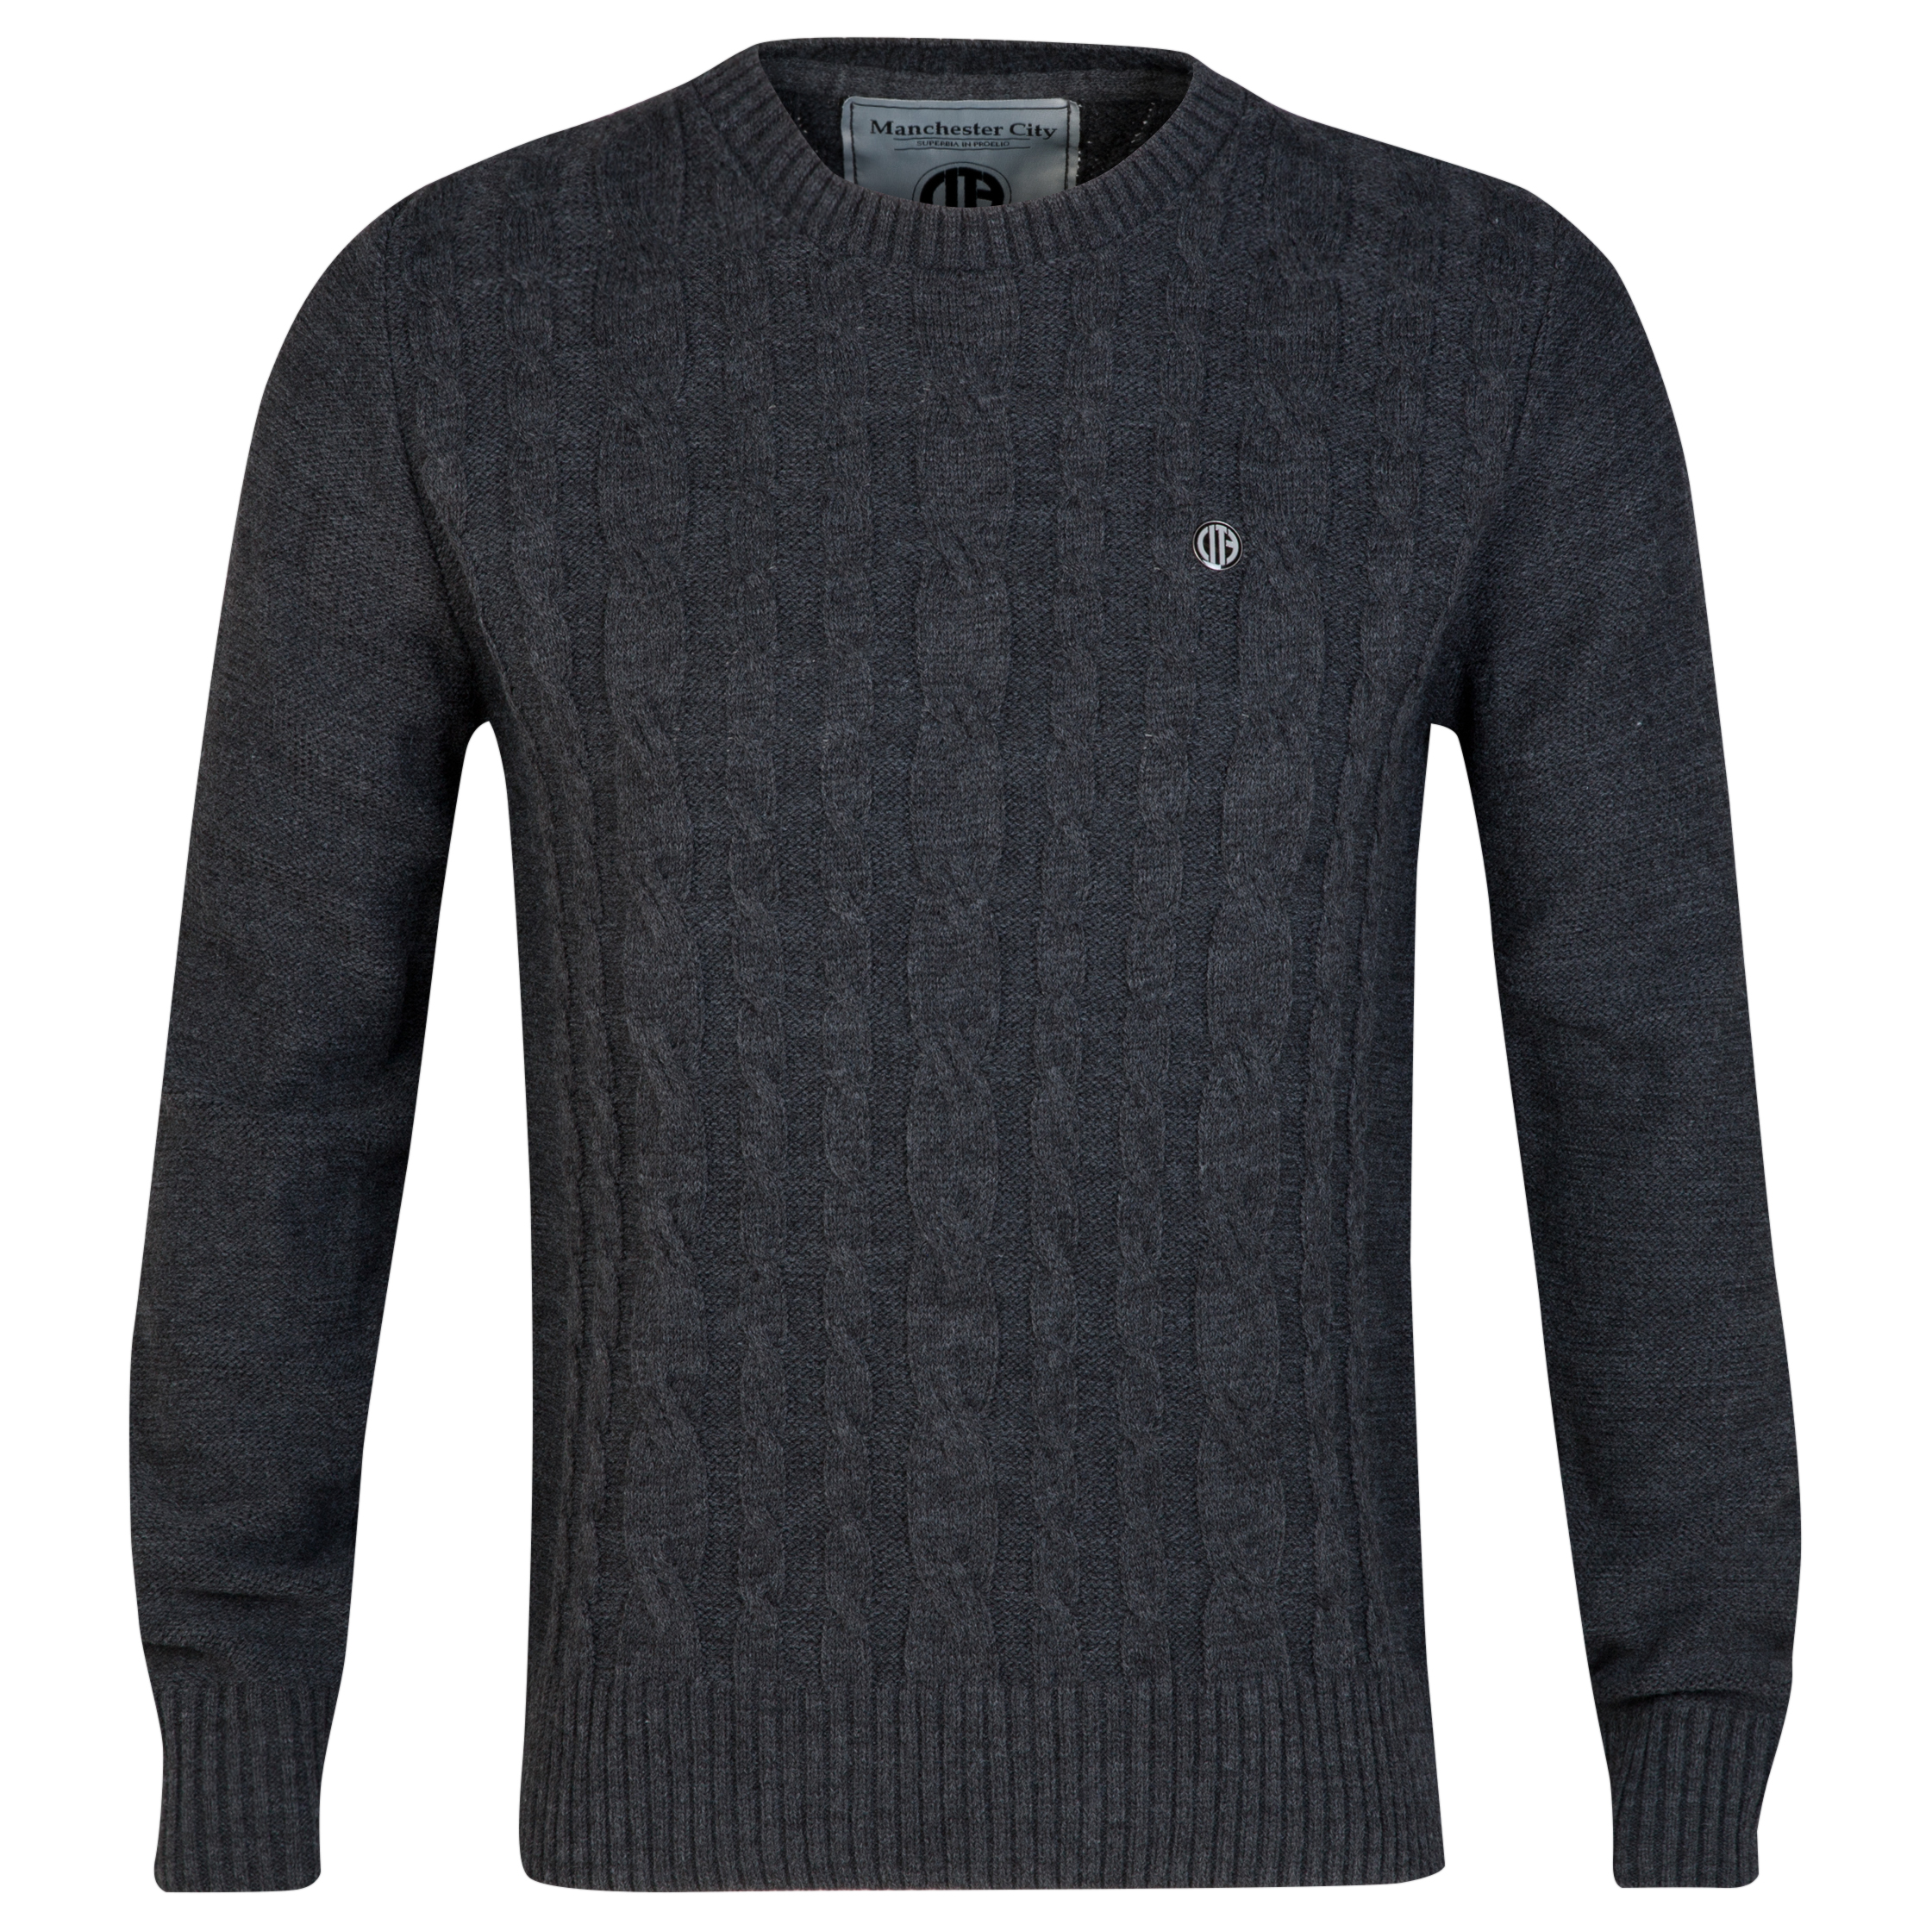 Manchester City Cable Knit Jumper - Grey - Mens